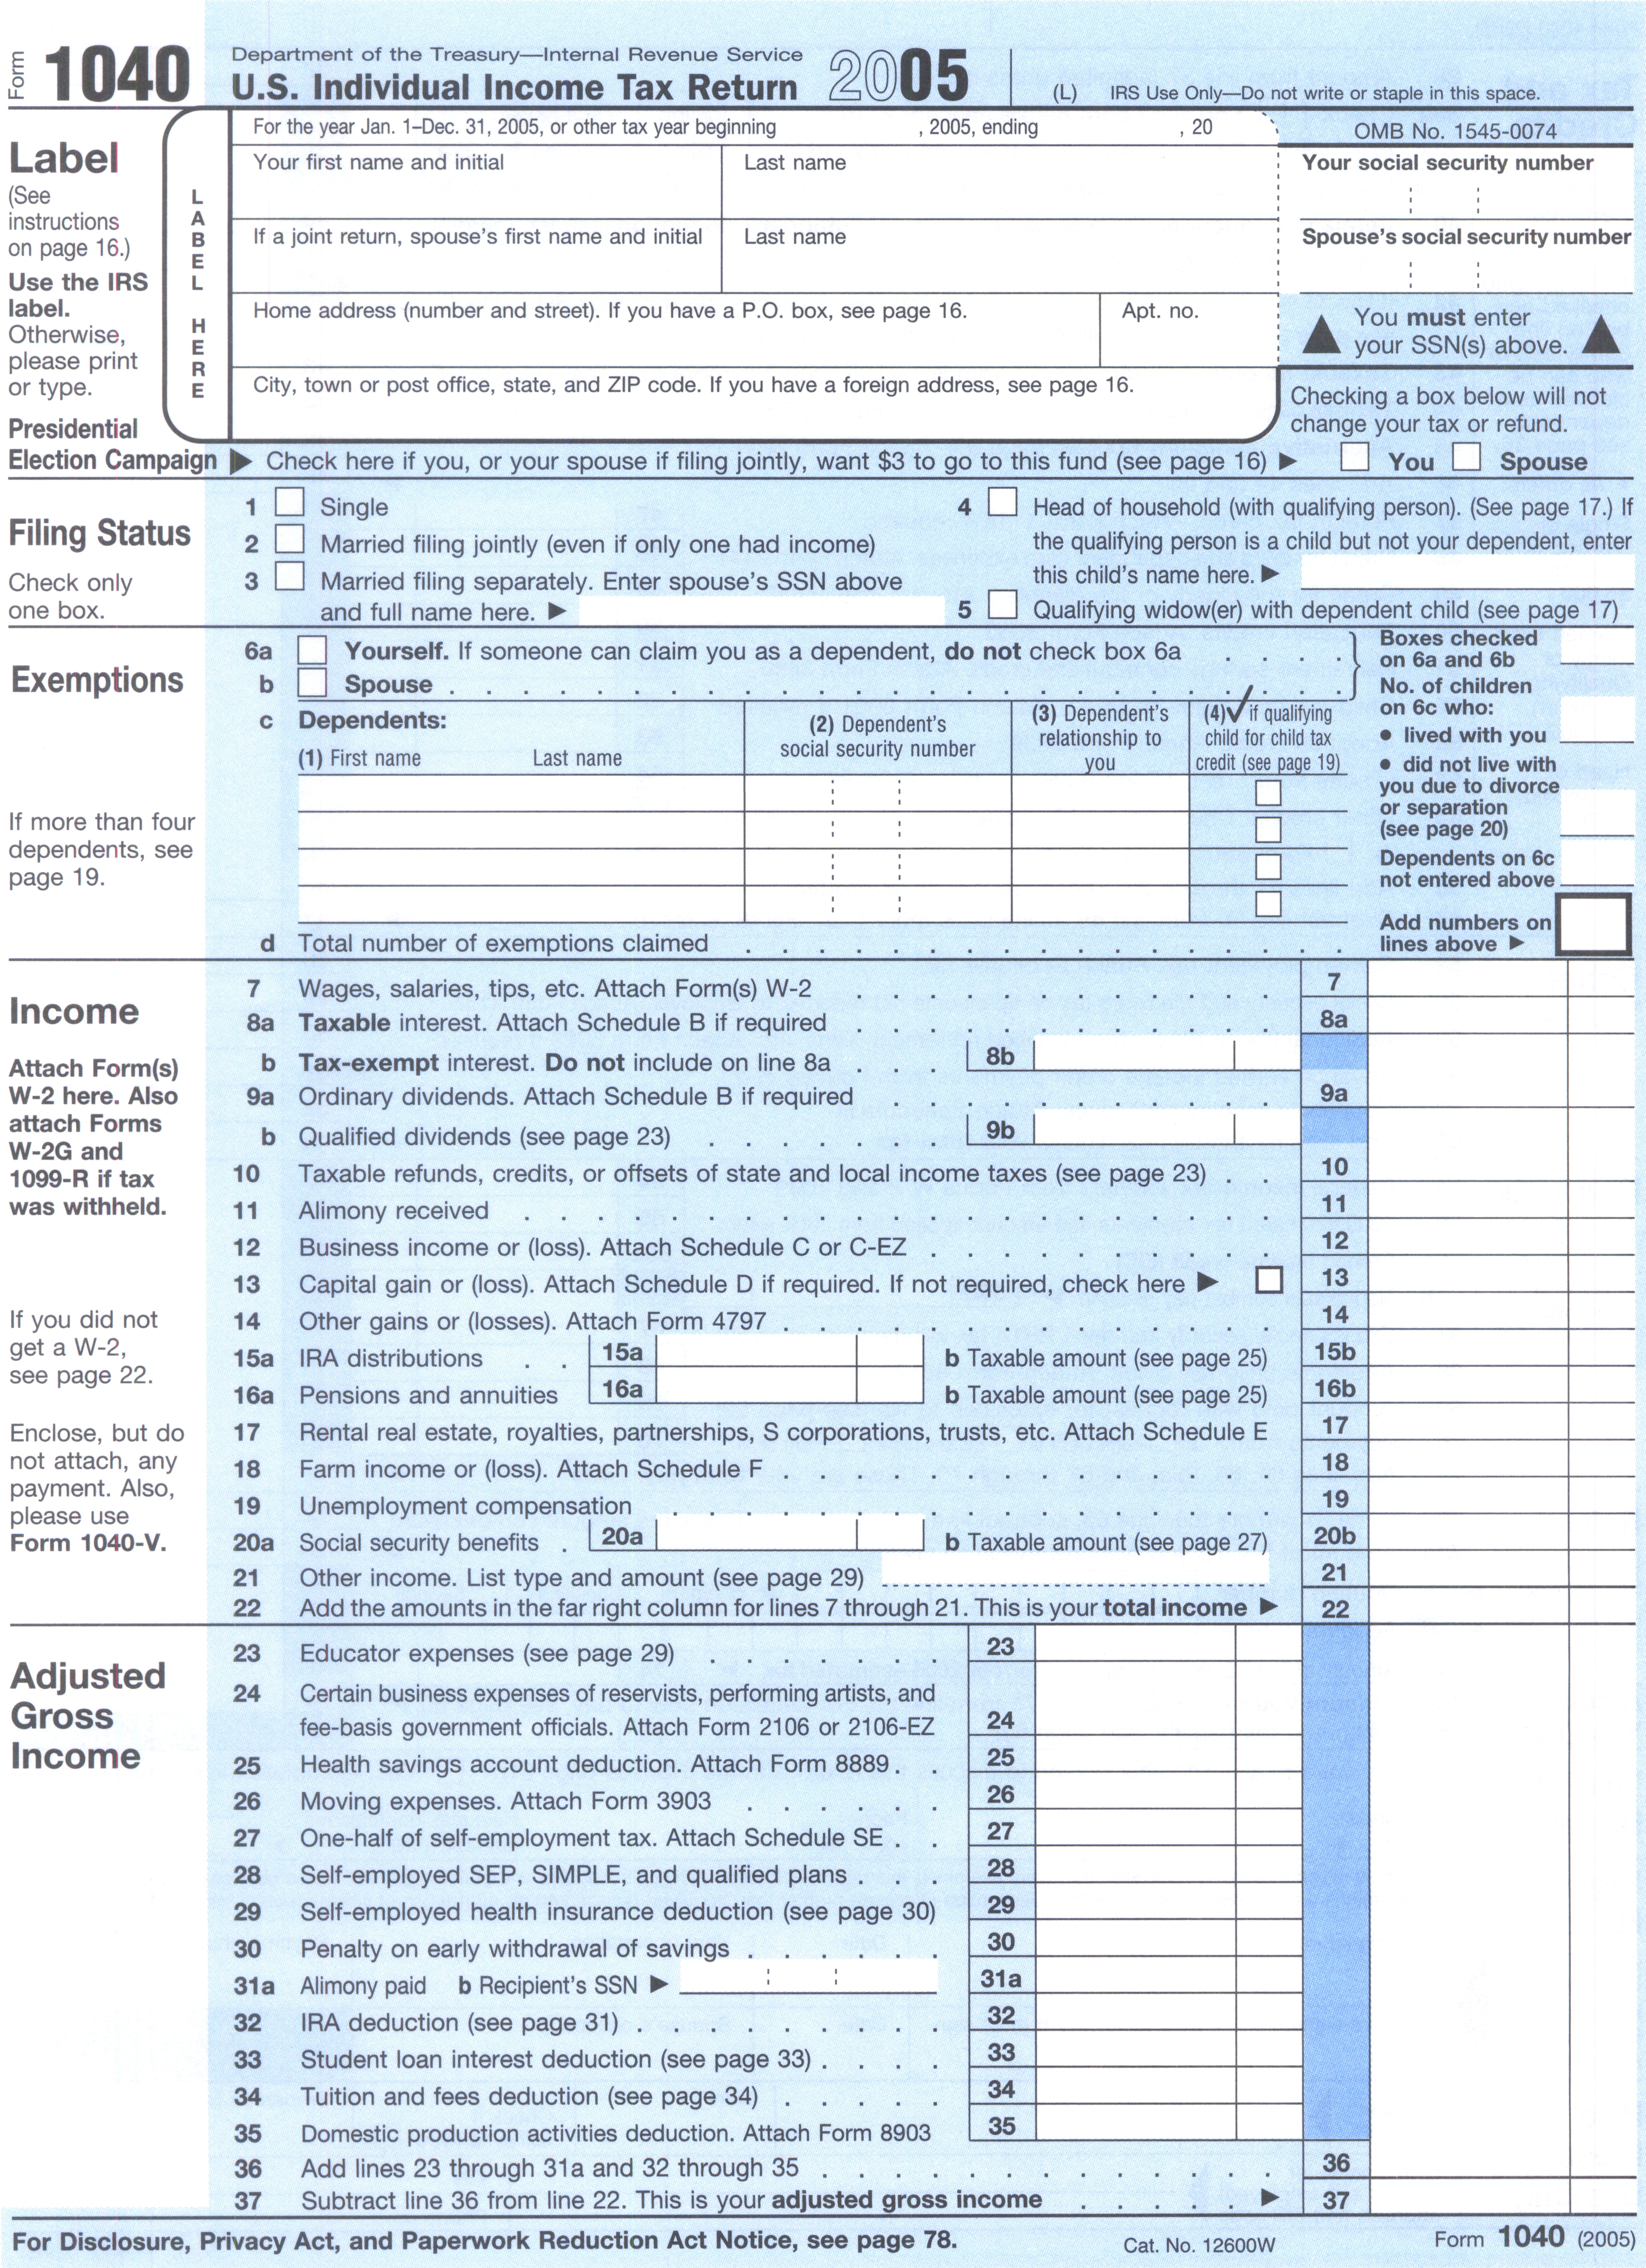 File:Form 1040, 2005.jpg - Wikimedia Commons